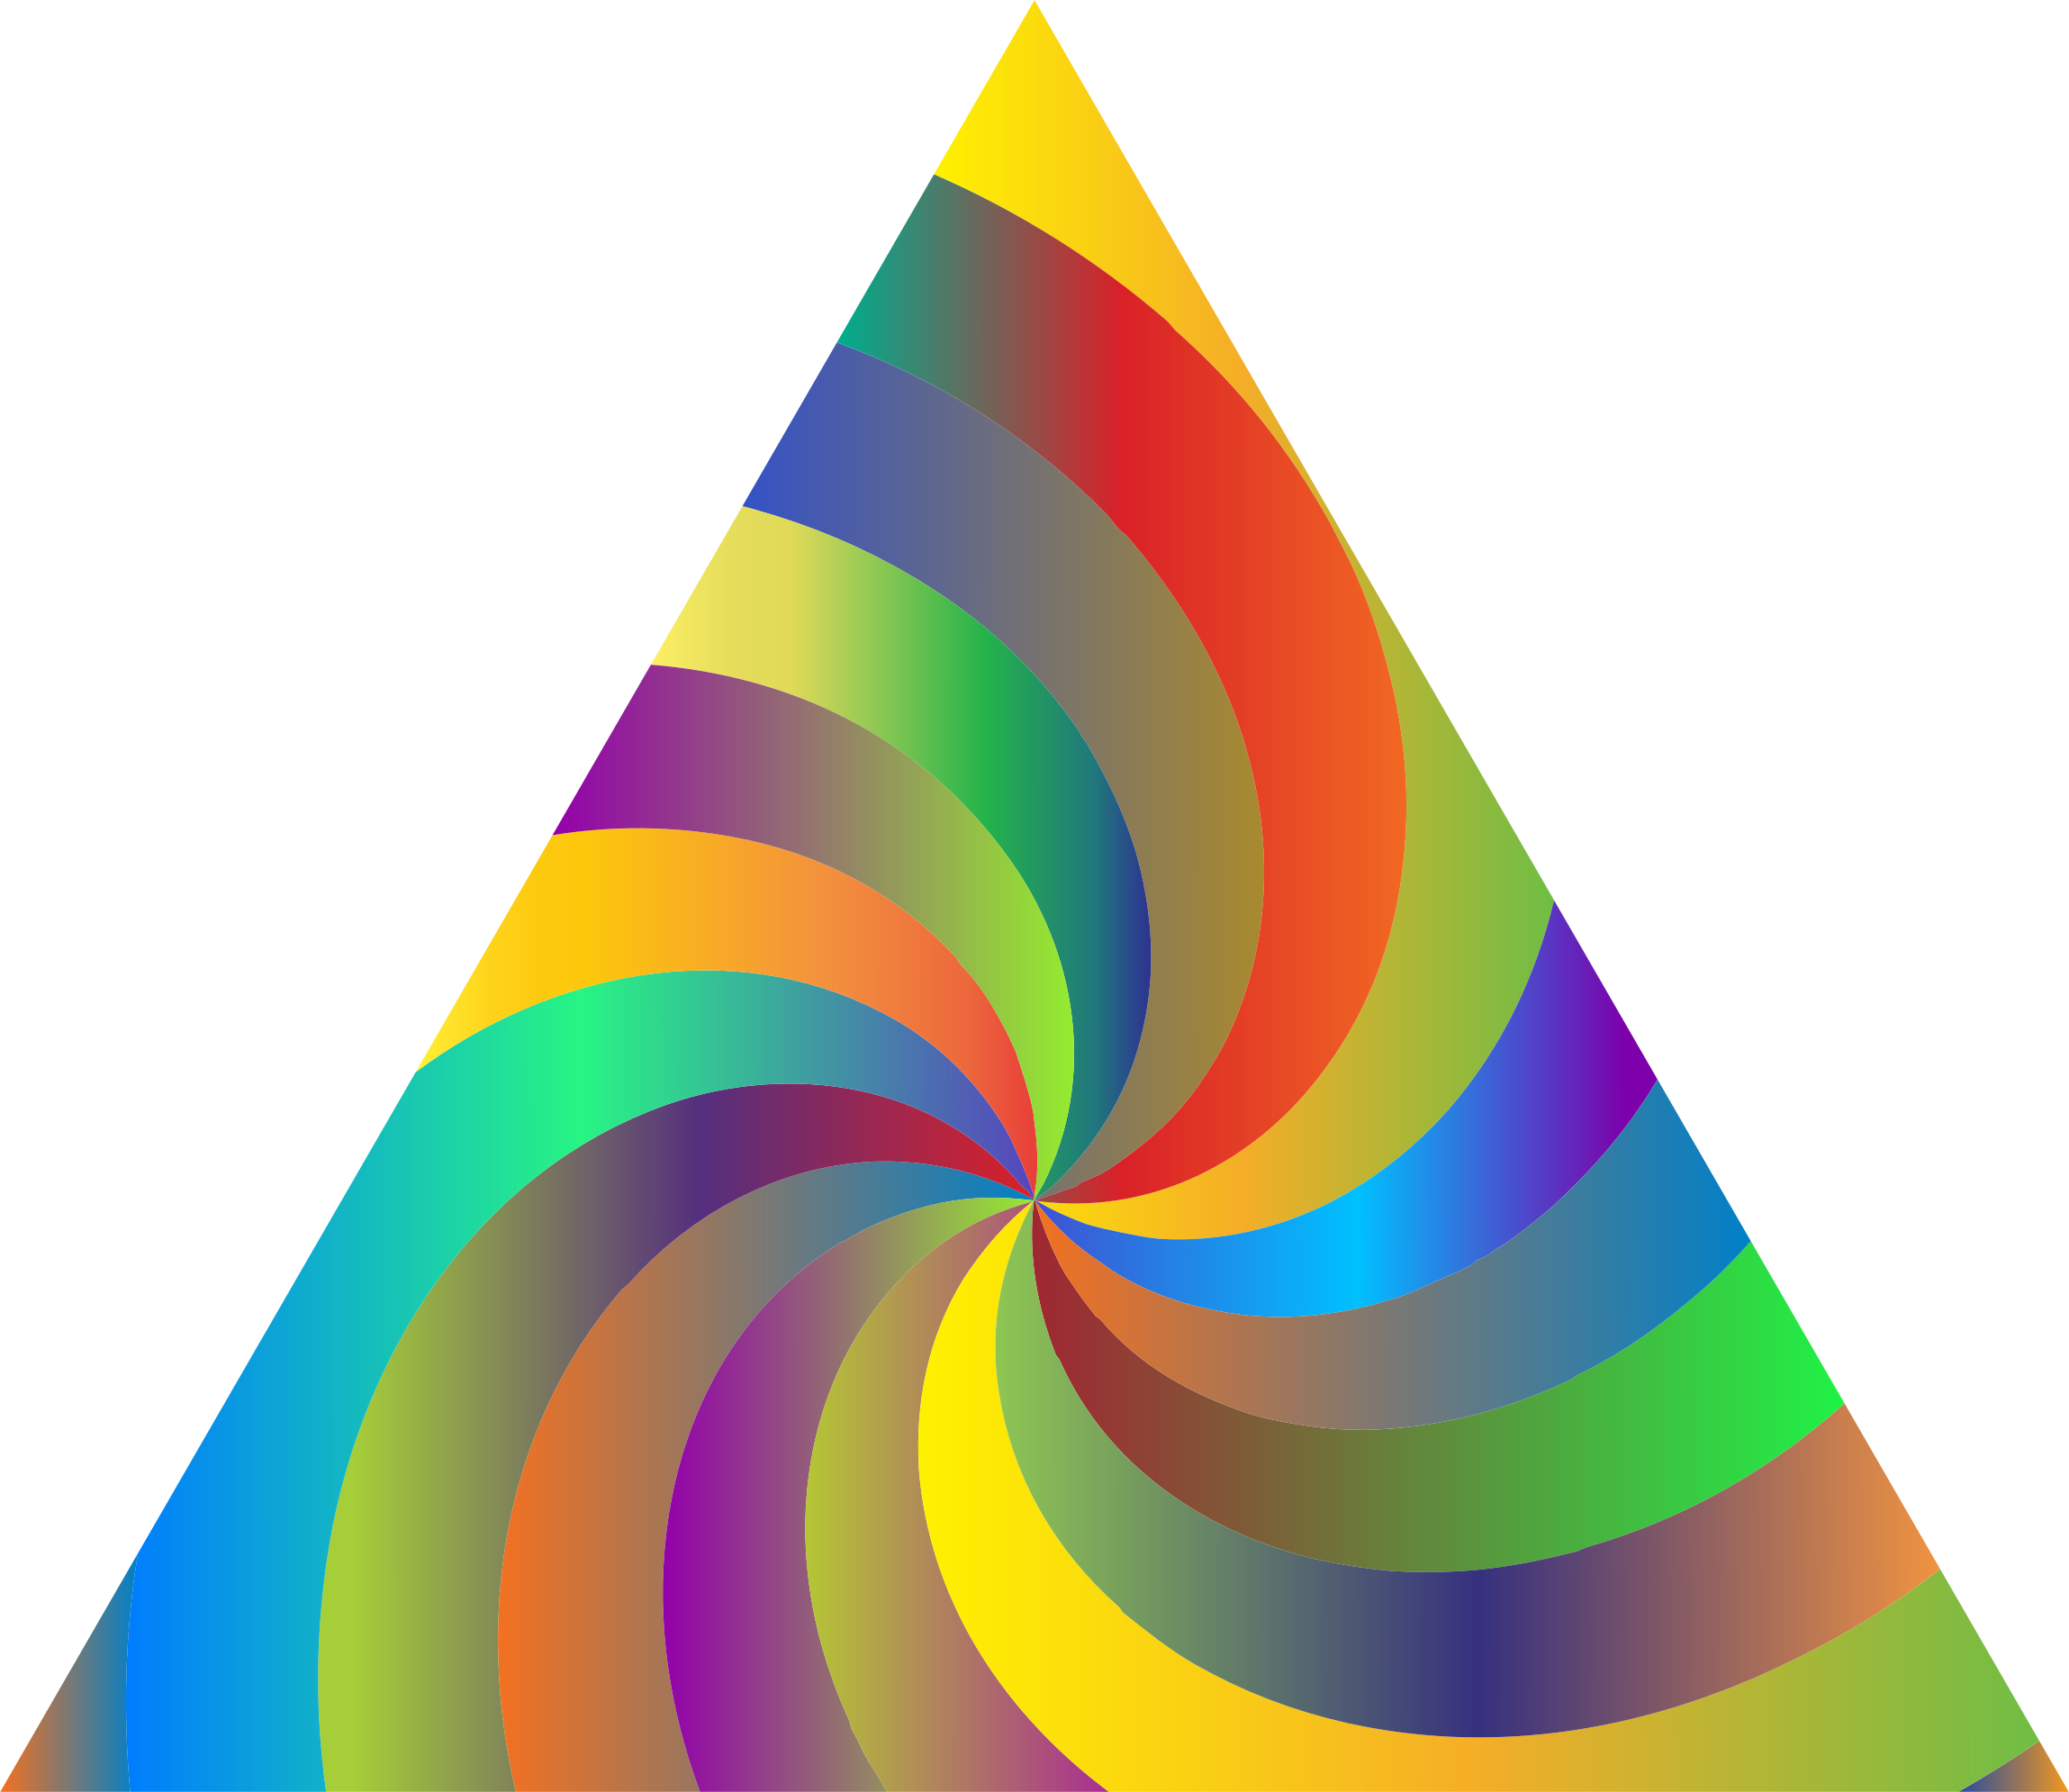 Prismatic Swirly Triangle by GDJ